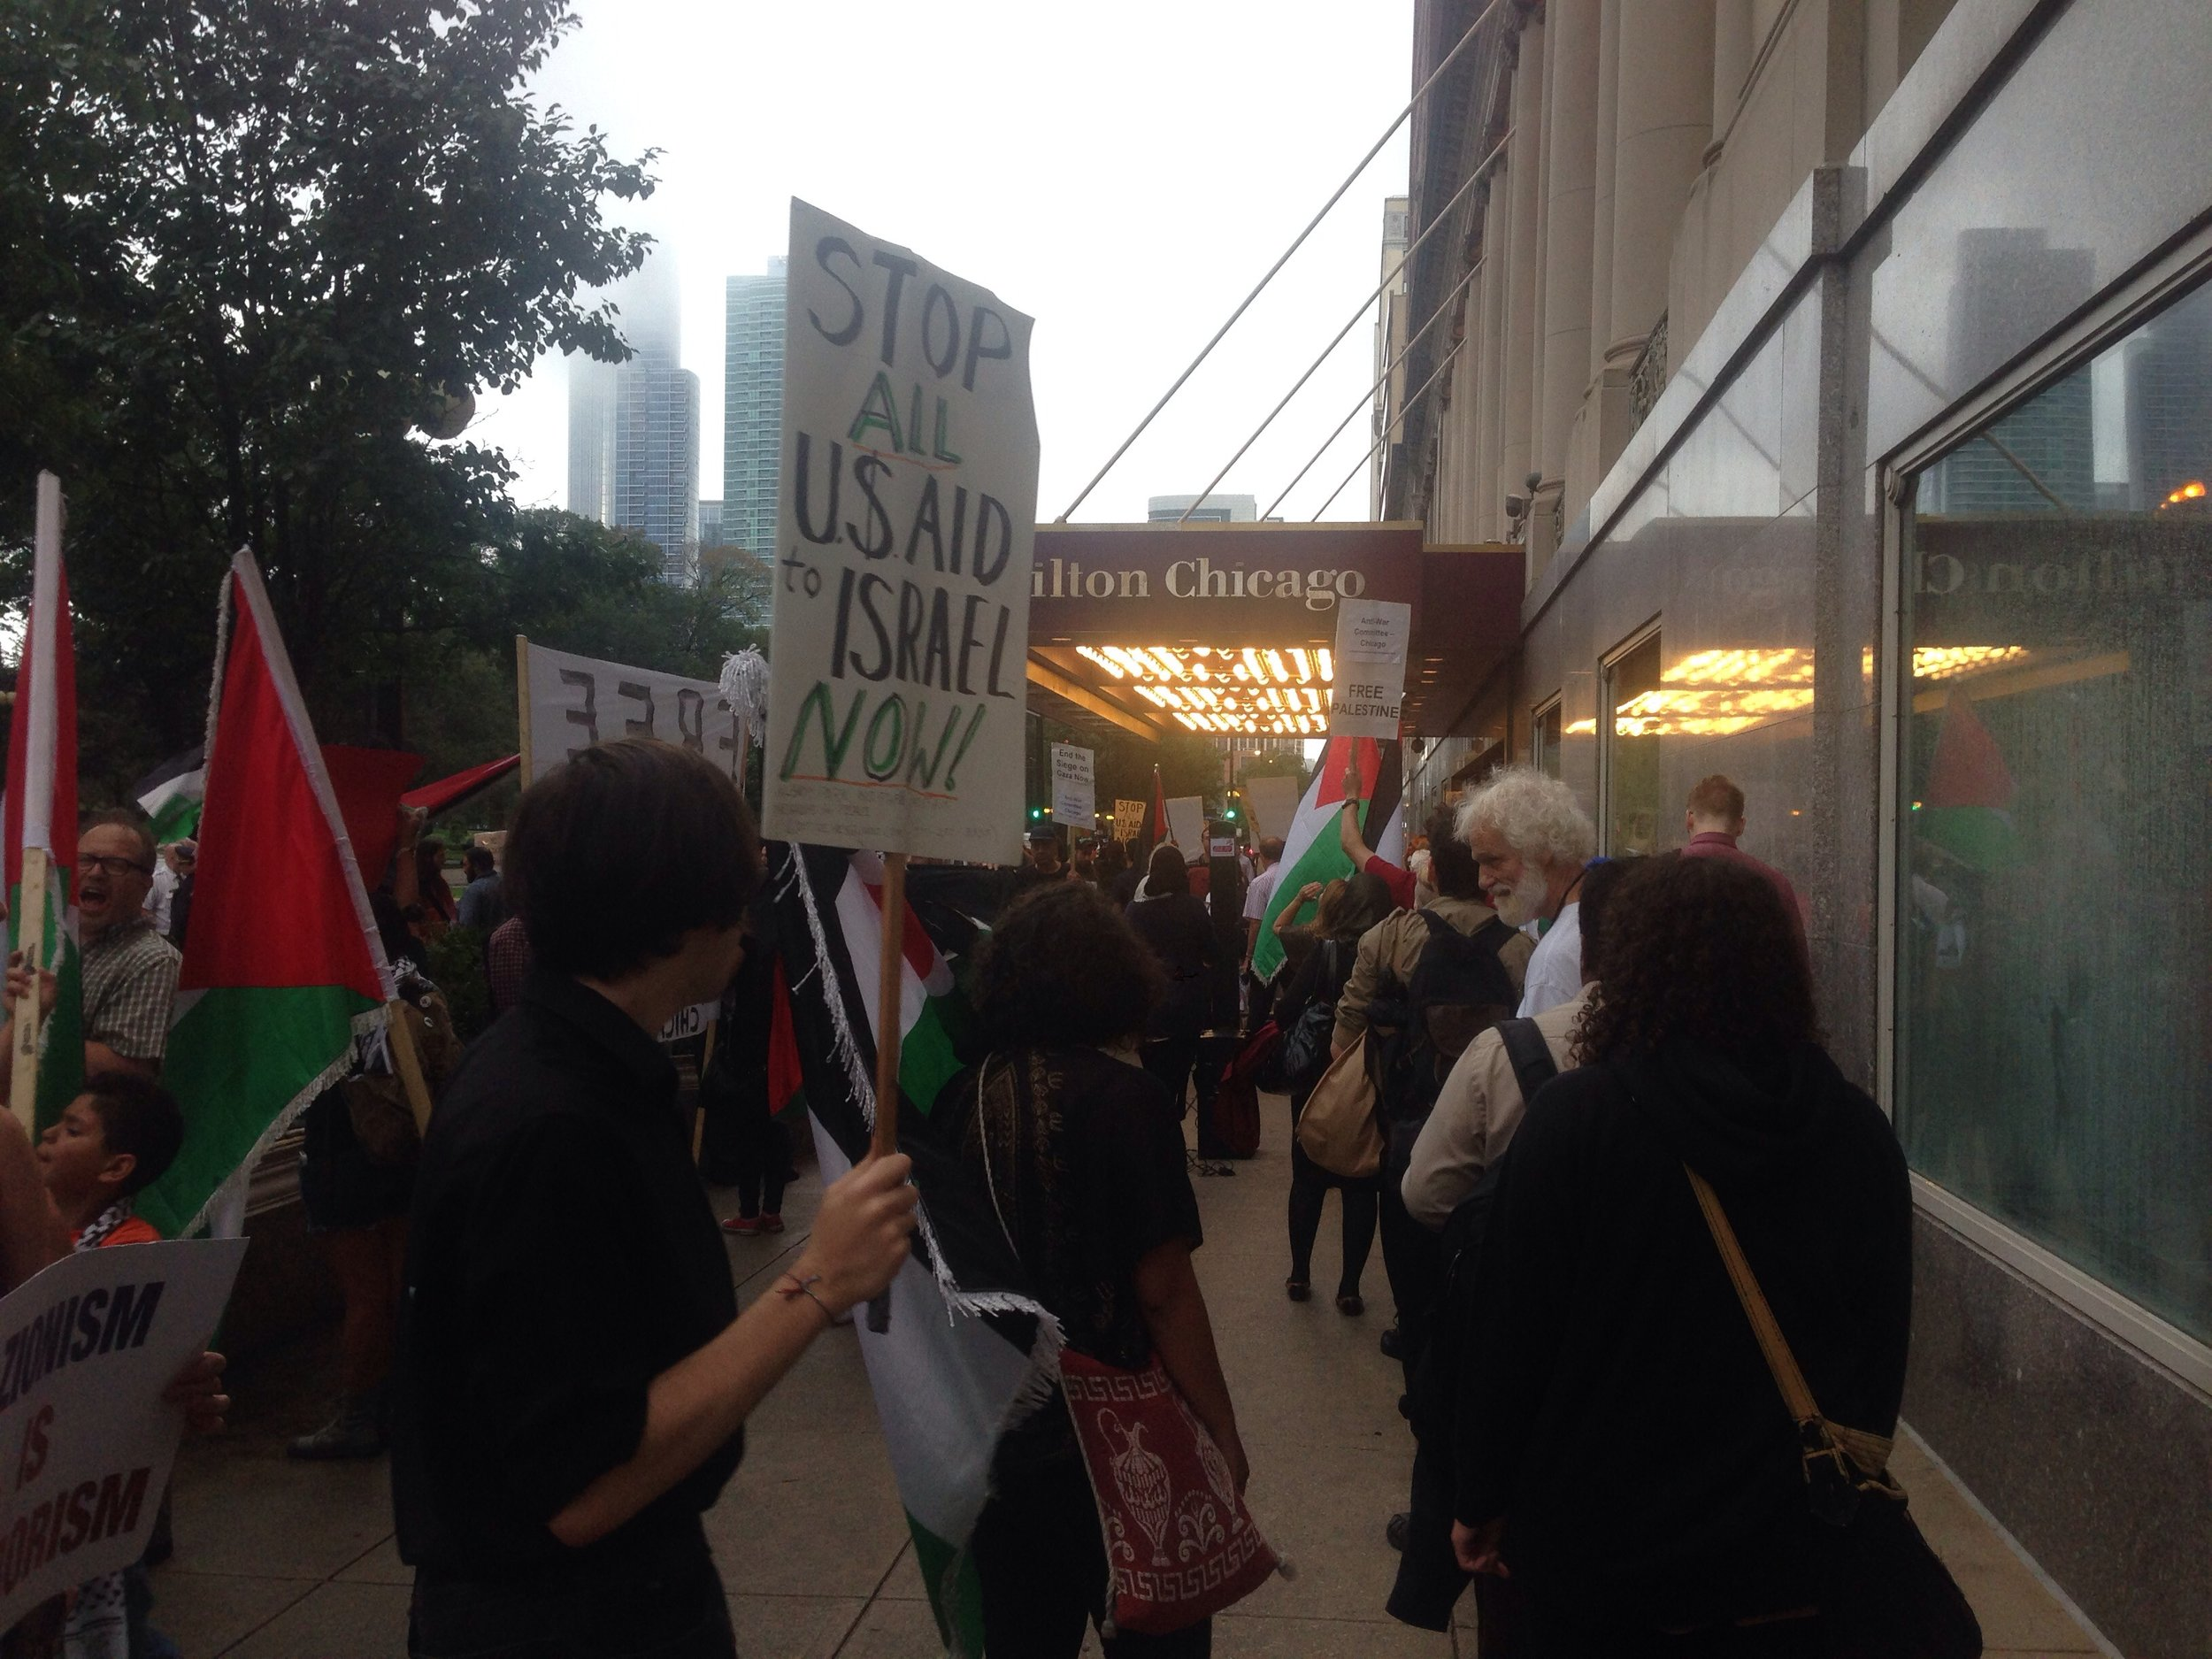 Demonstrators picket outside of the Hilton Chicago, 720 s. Michigan ave., while a fundraiser for the Israeli Defense Forces occurred inside the hotel on Aug. 21. | Nader Ihmoud